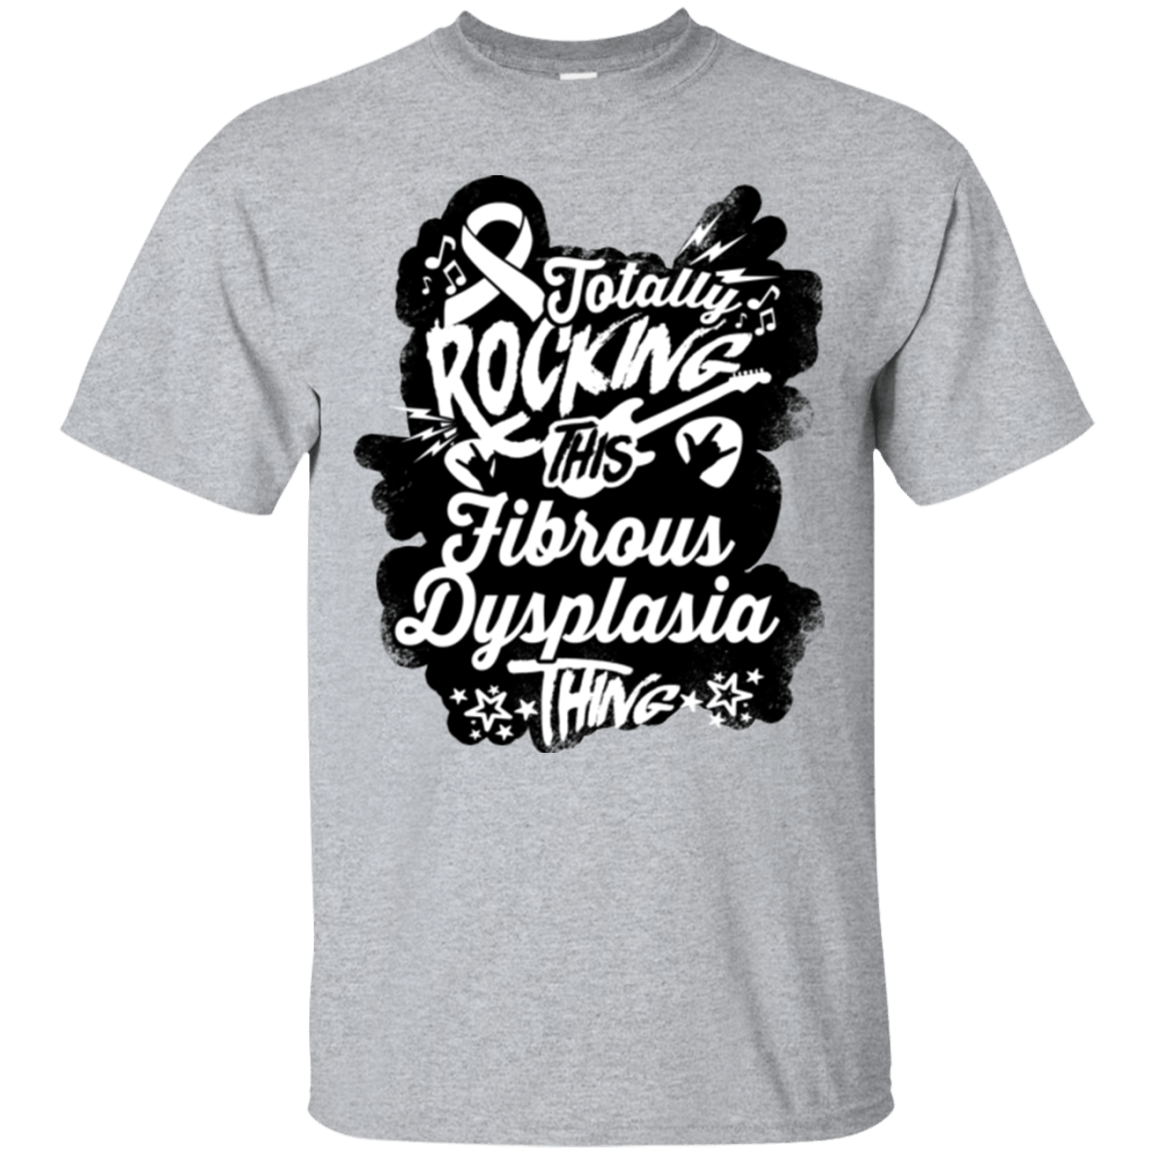 Rocking Fibrous Dysplasia Unisex Shirt - The Unchargeables